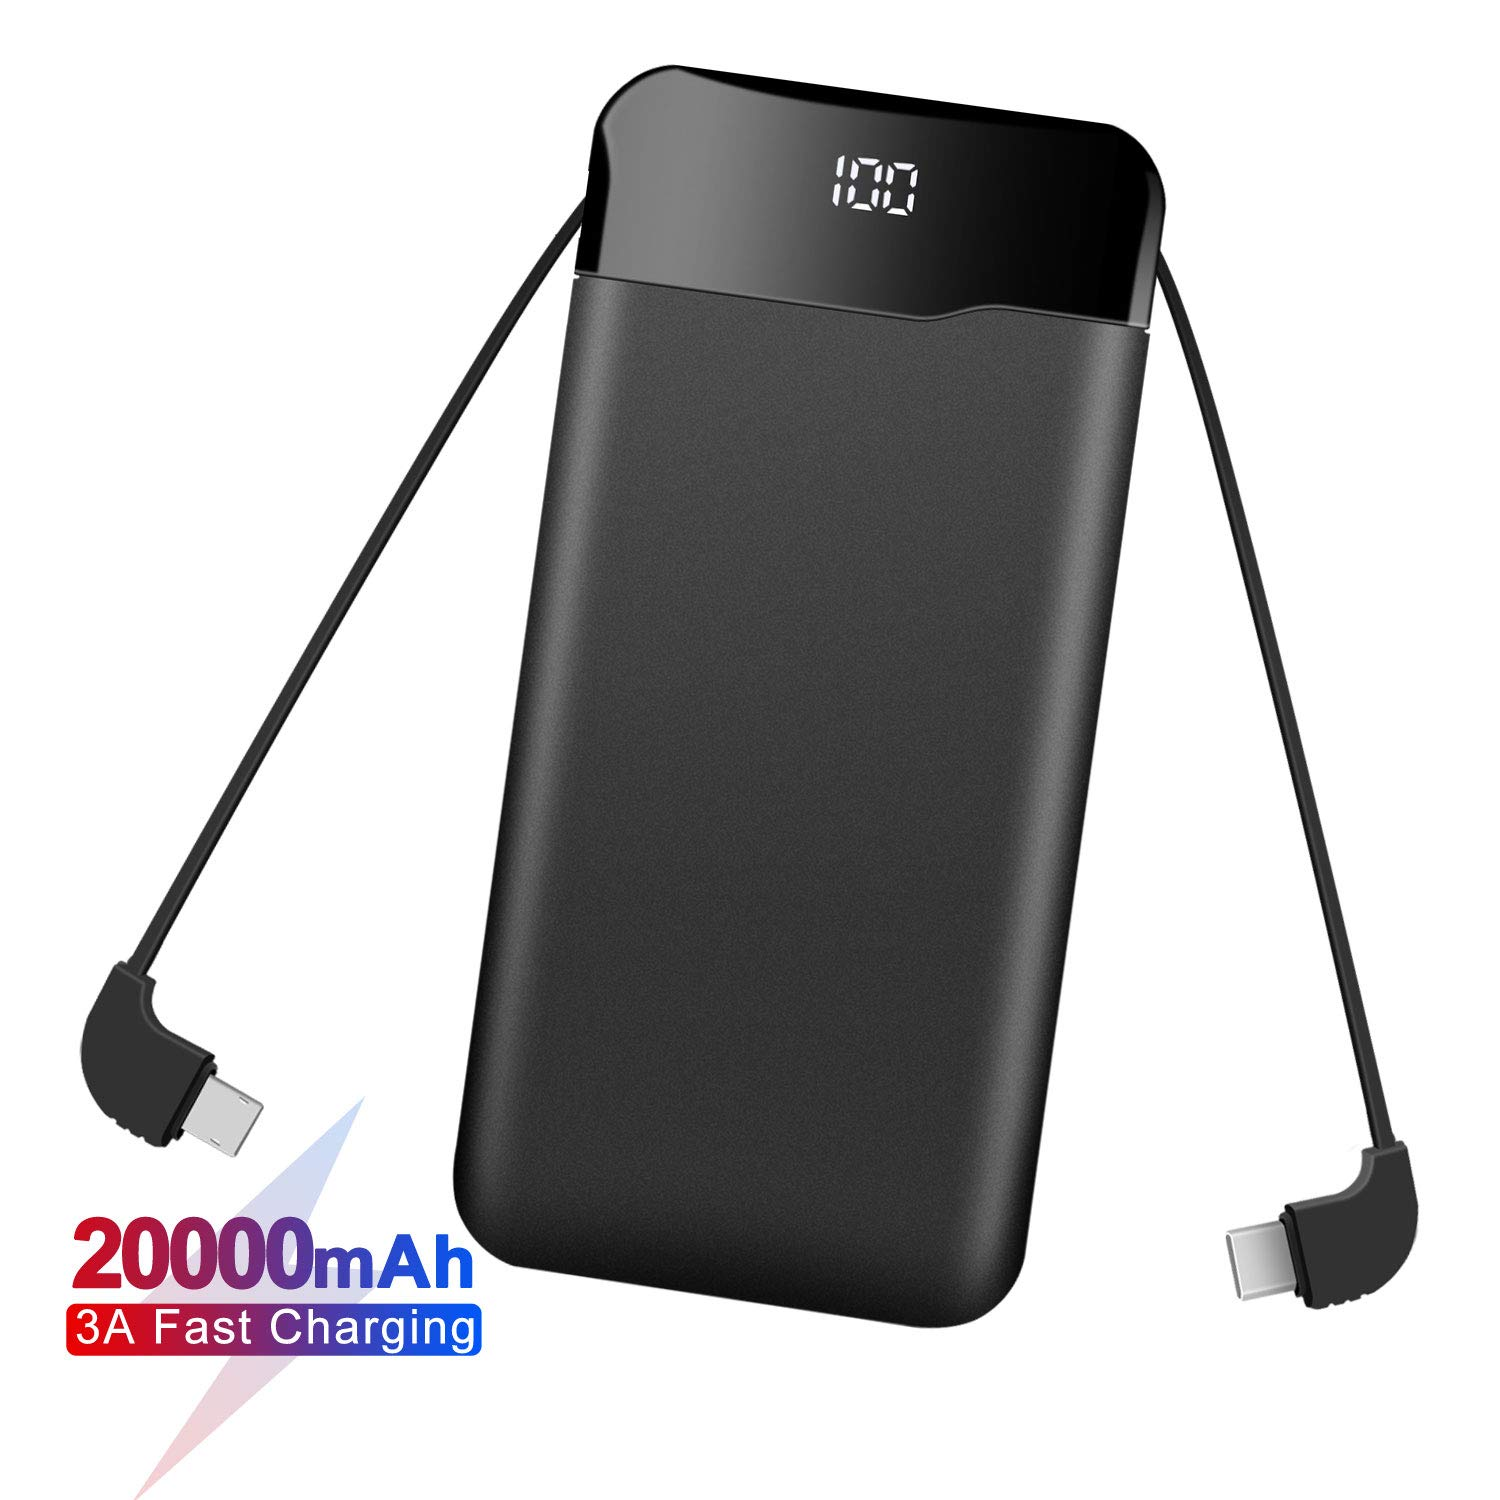 Portable Charger Power Bank 20000mAh Built in Cables Fast Charging 3A Battery Charger with Tri-Input and Four-Output,LCD Display External Battery for Smart Phone, Android, Tablet and More(Black)